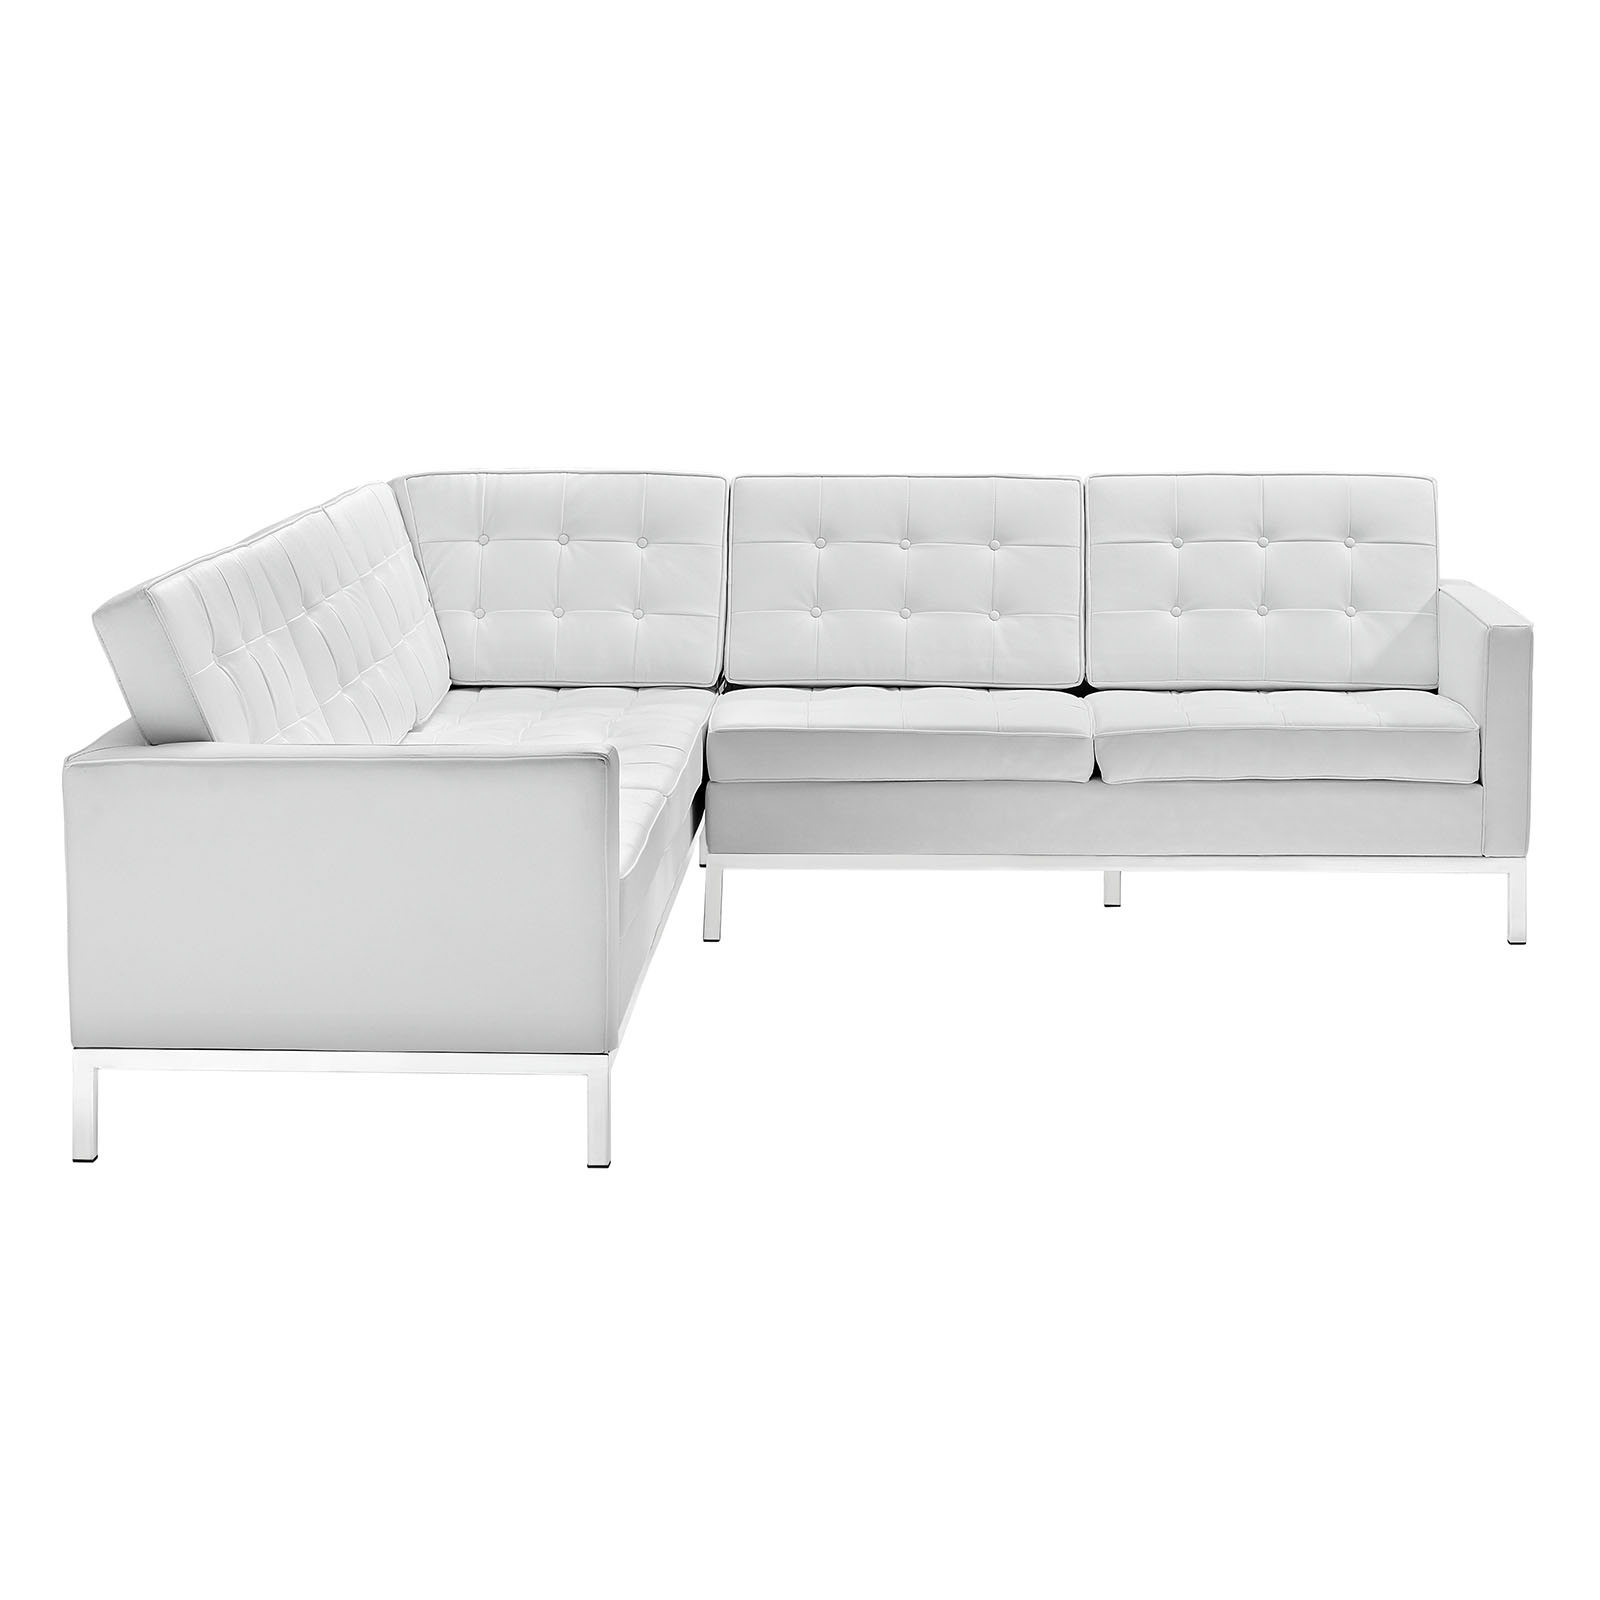 Modway Loft Leather L Shaped Sectional Sofa In White – Beyond Stores For Newest Leather L Shaped Sectional Sofas (View 16 of 20)